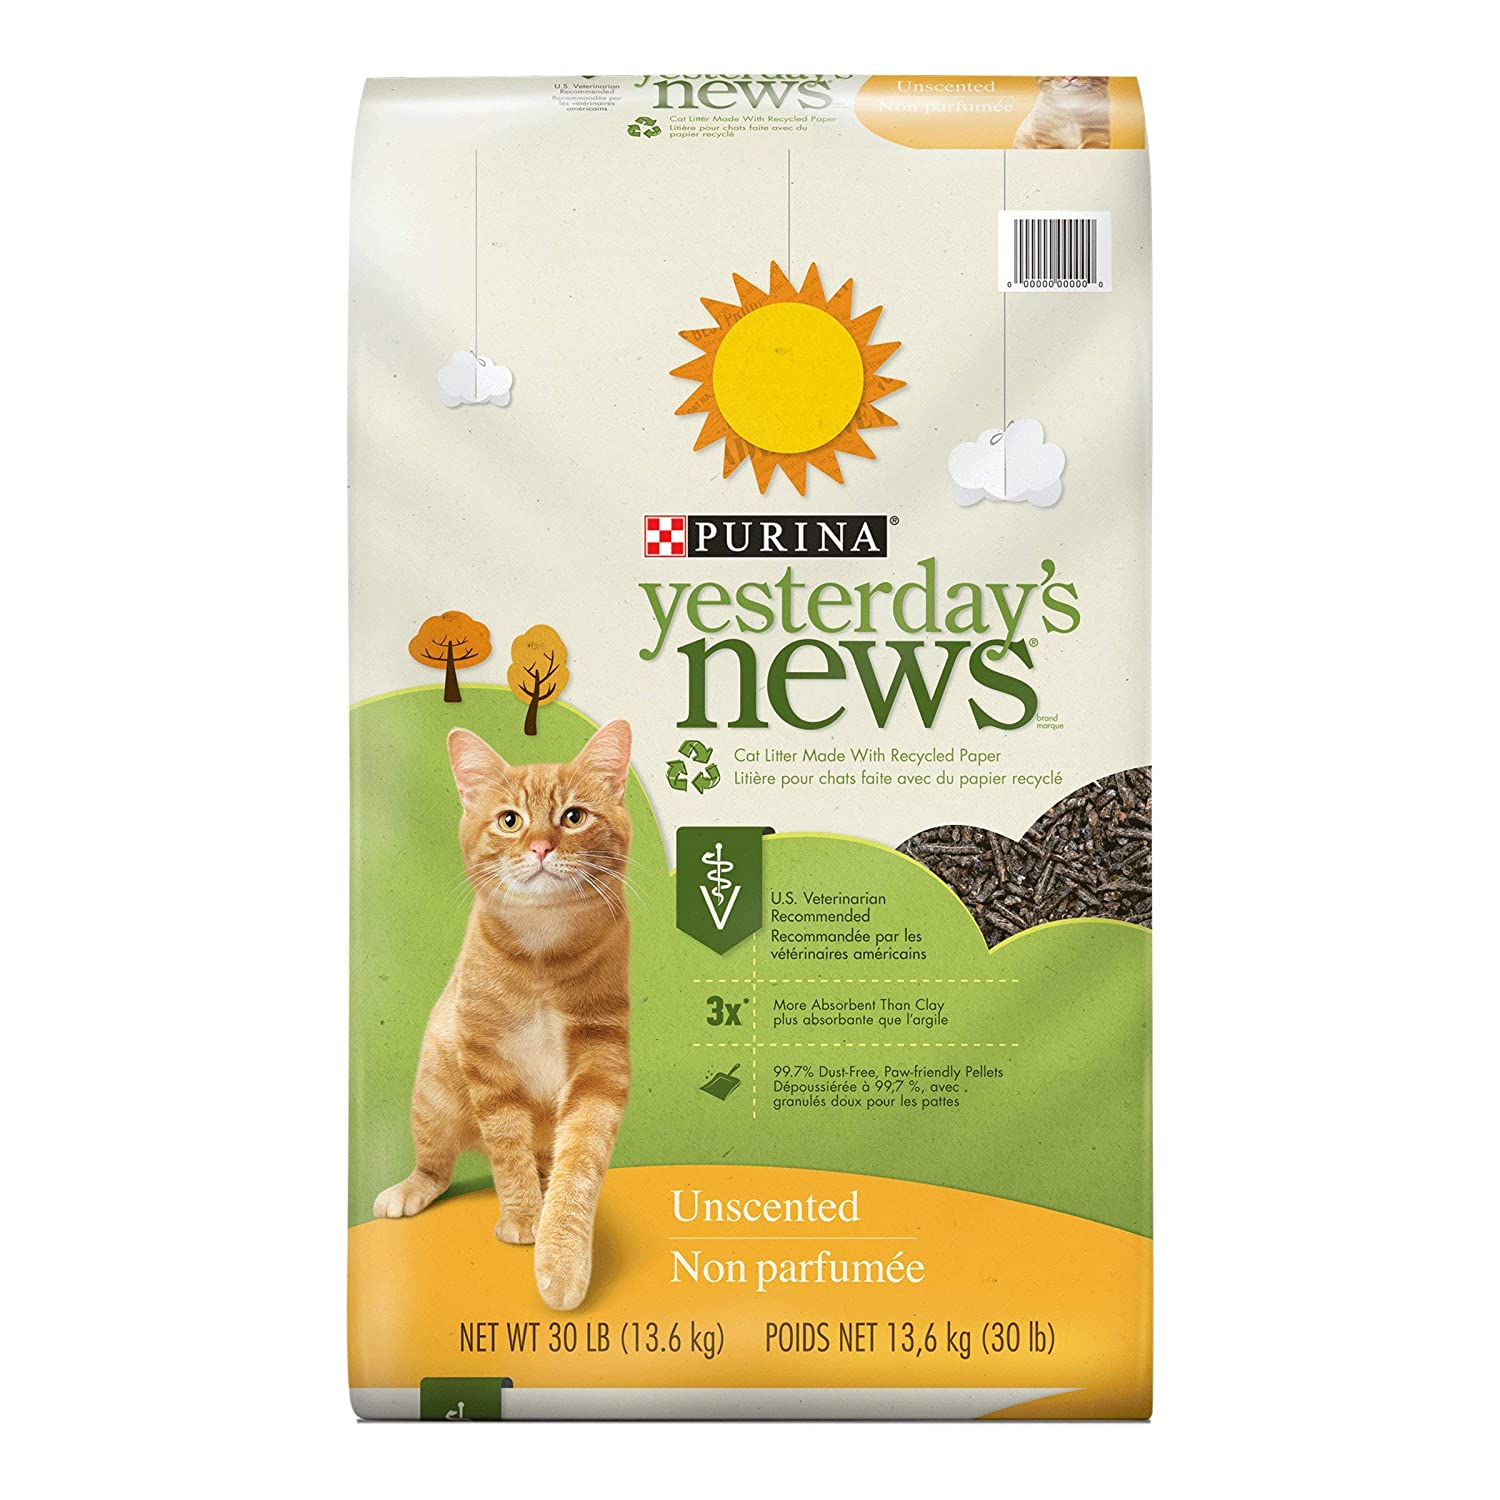 2.Purina Yesterday's News Unscented Cat Litter